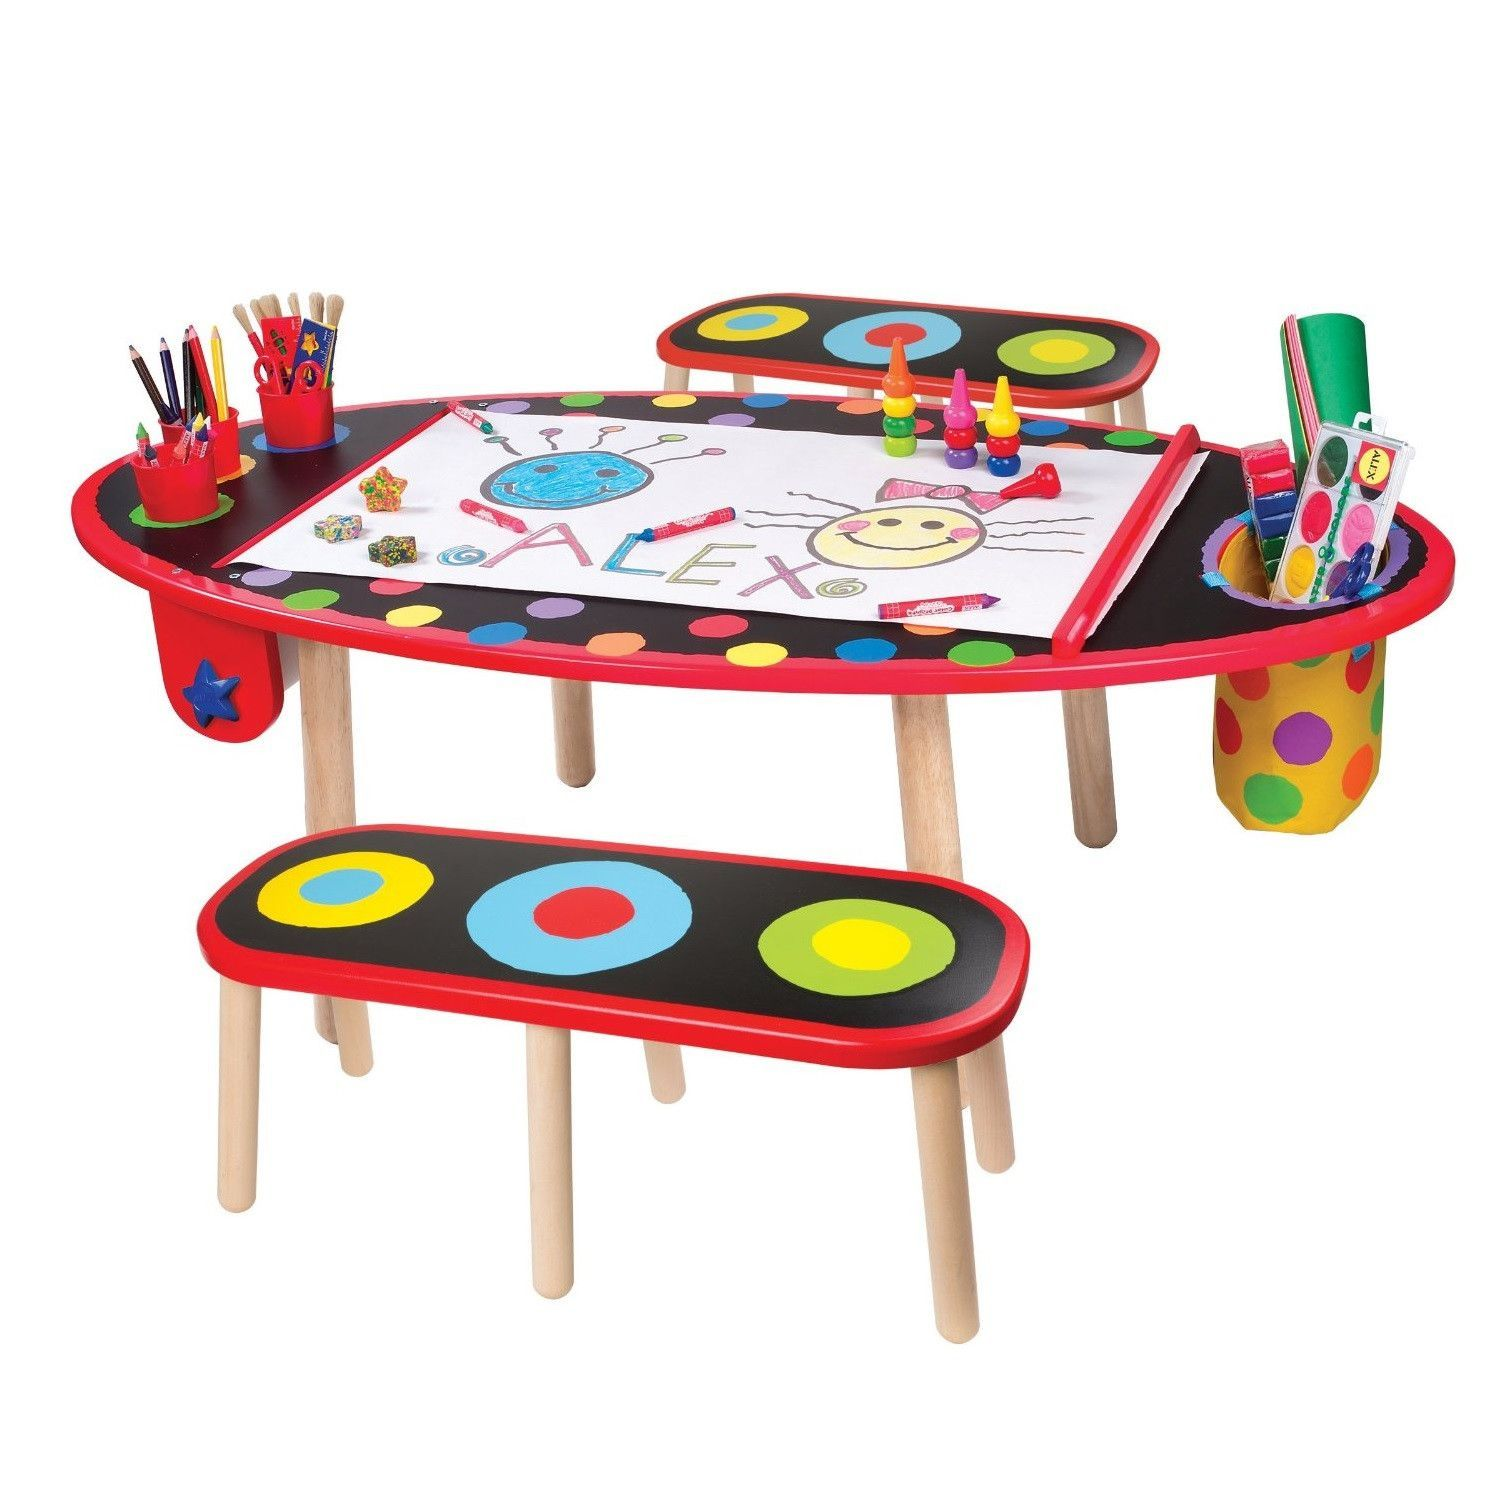 Kids Art Studio Drawing Table And Benches Art Table Toddler Art Table Kids Art Table